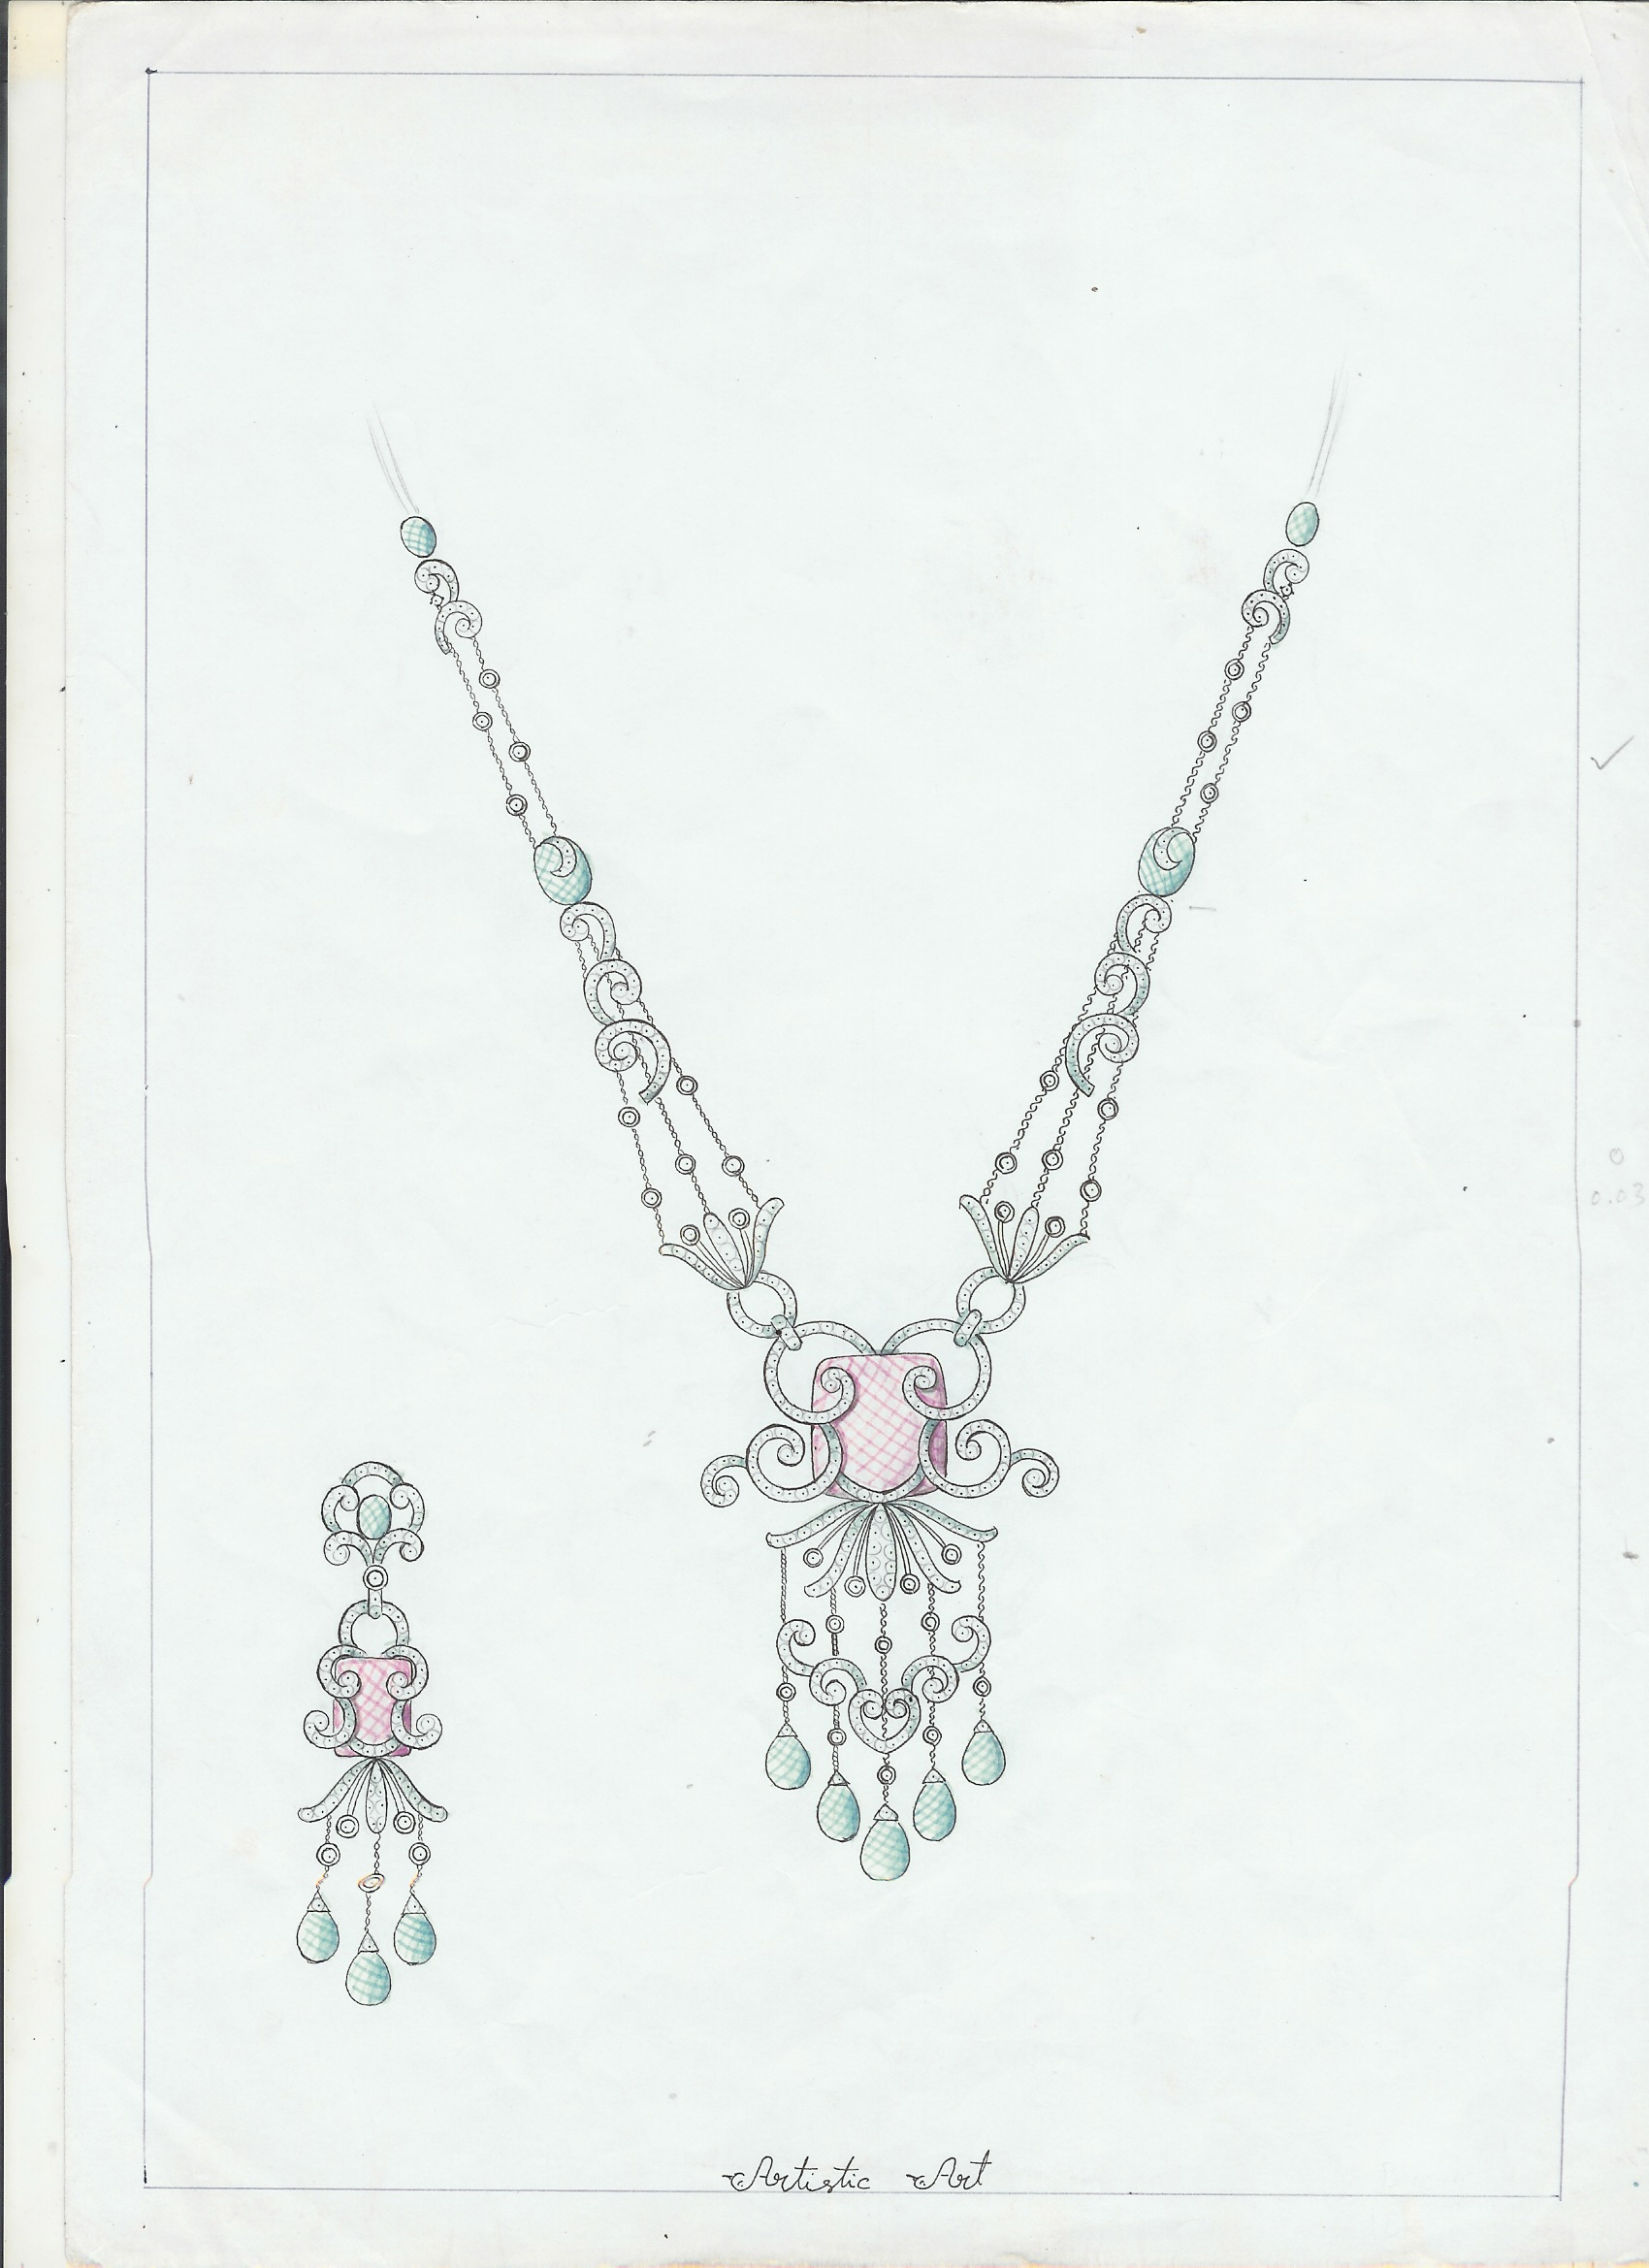 12 Sketches Design Jewelry Images - Jewelry Design Sketches ...